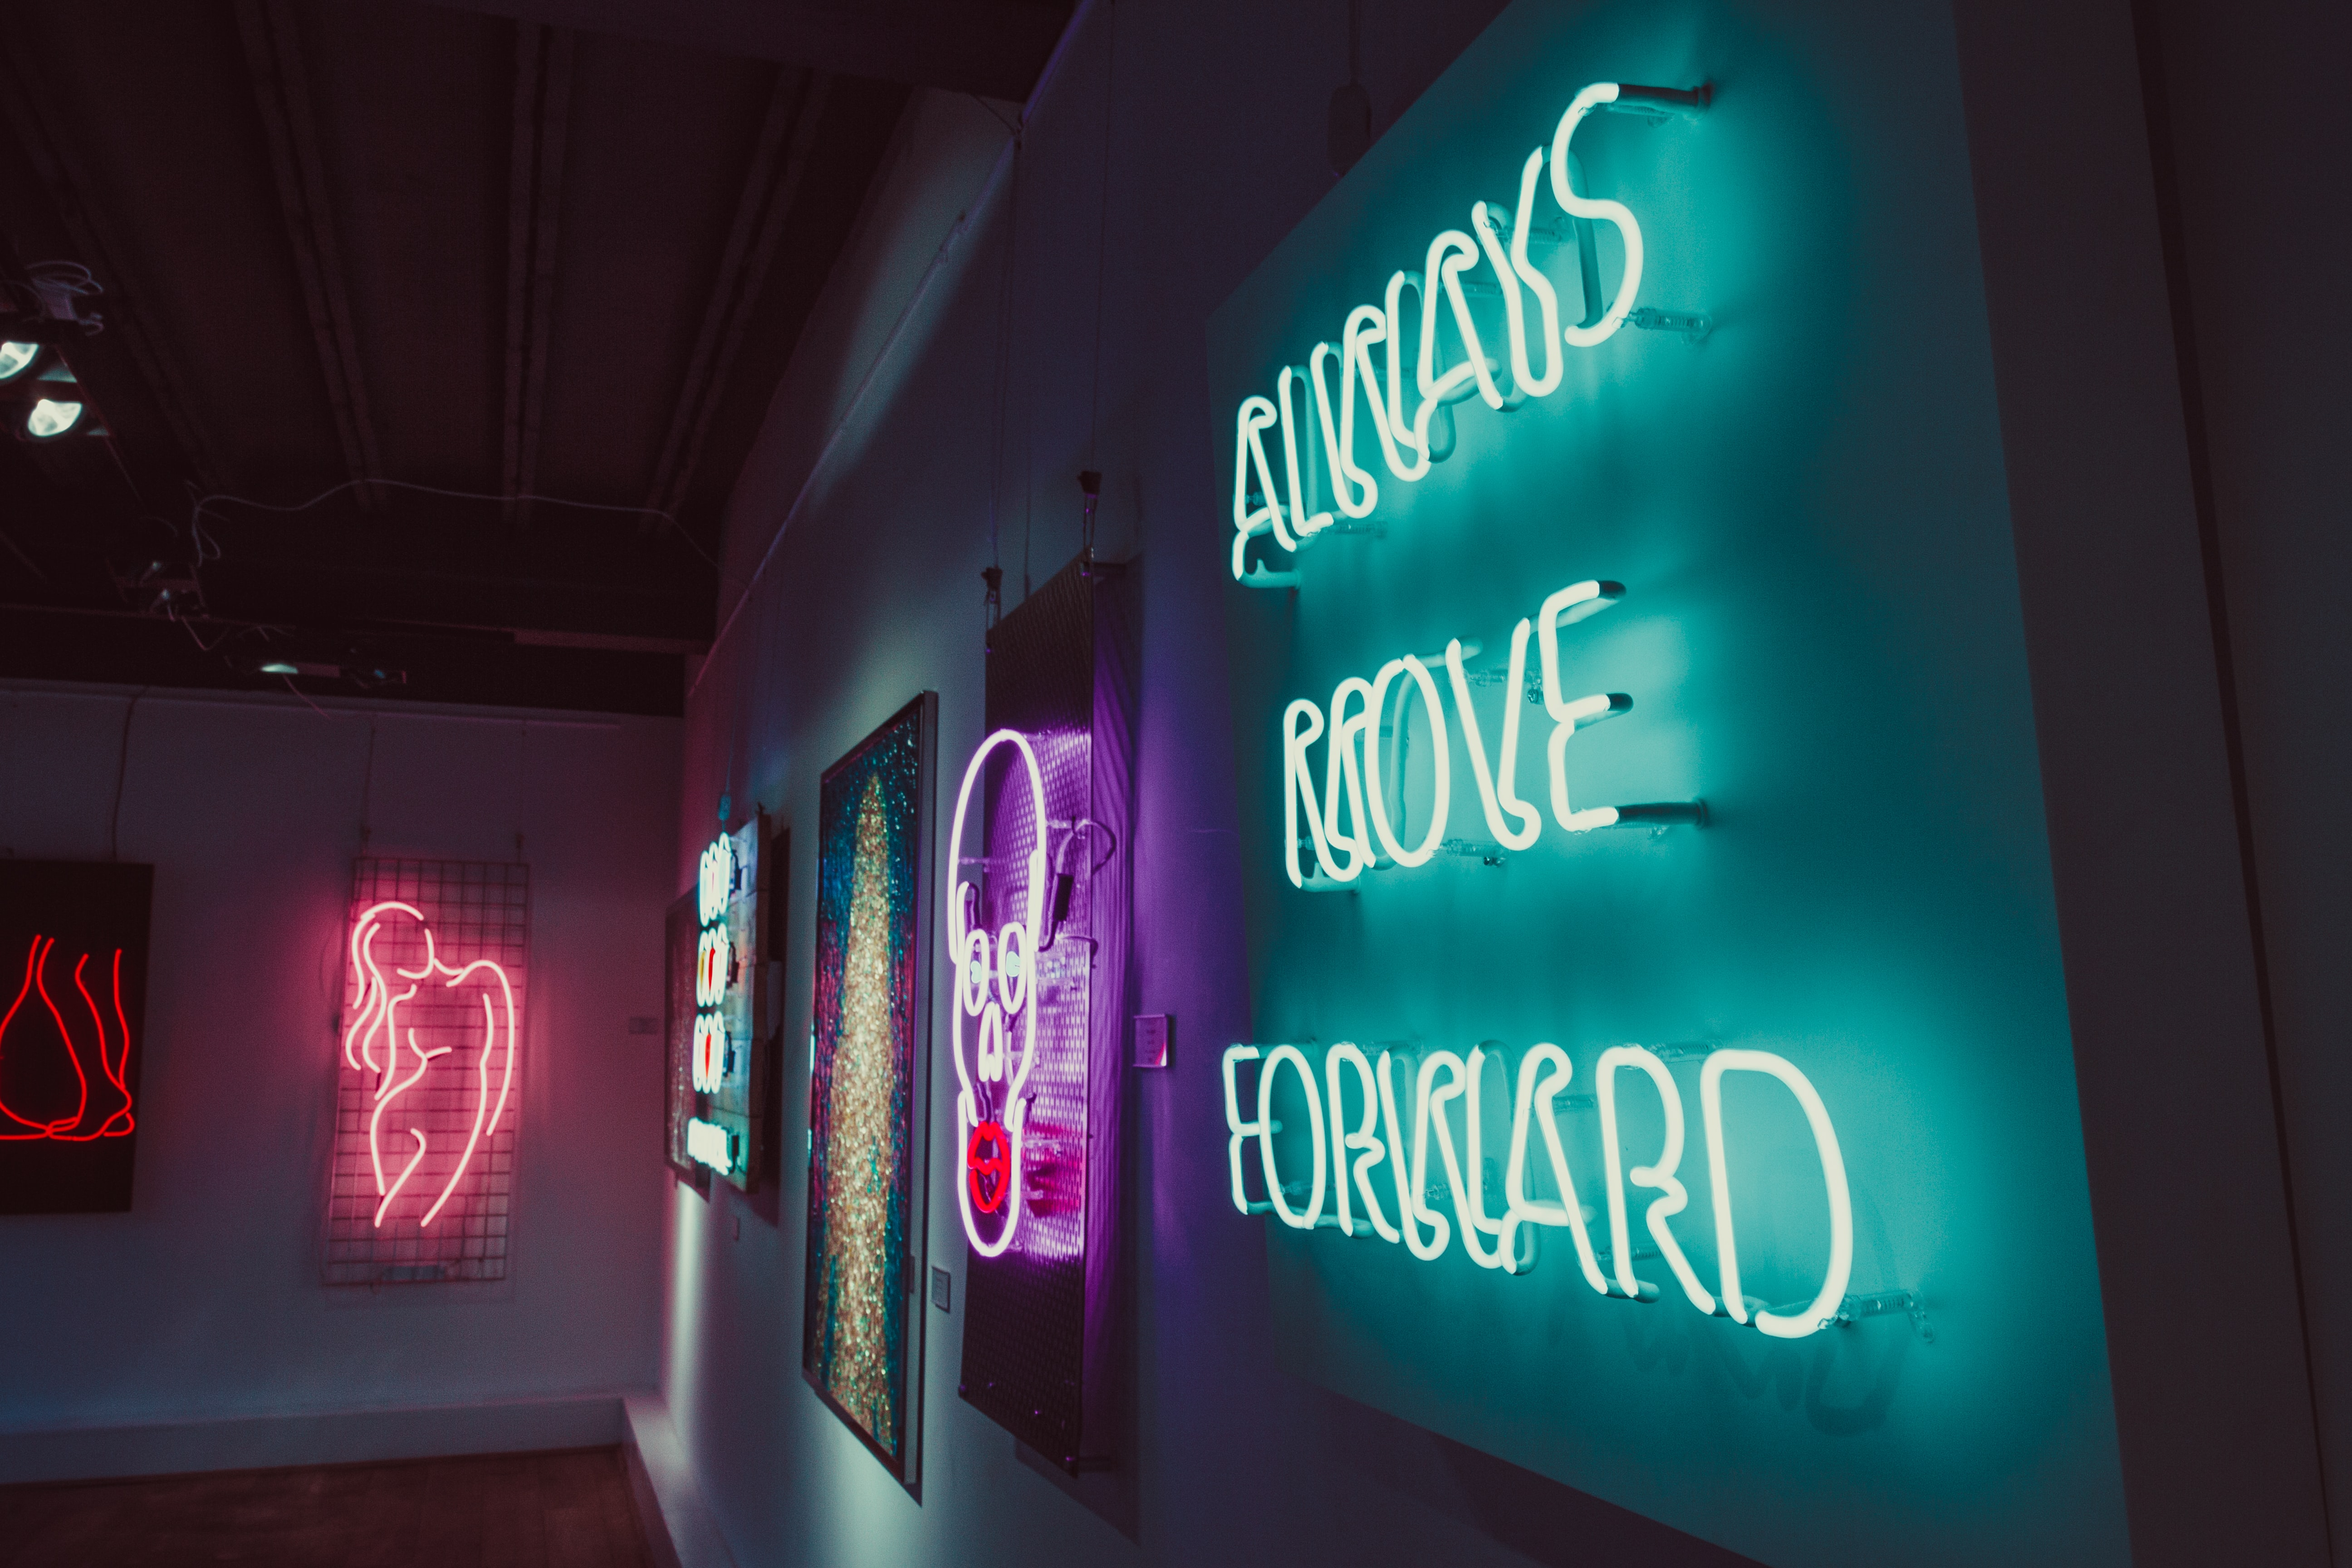 always move forward neon signage on wall